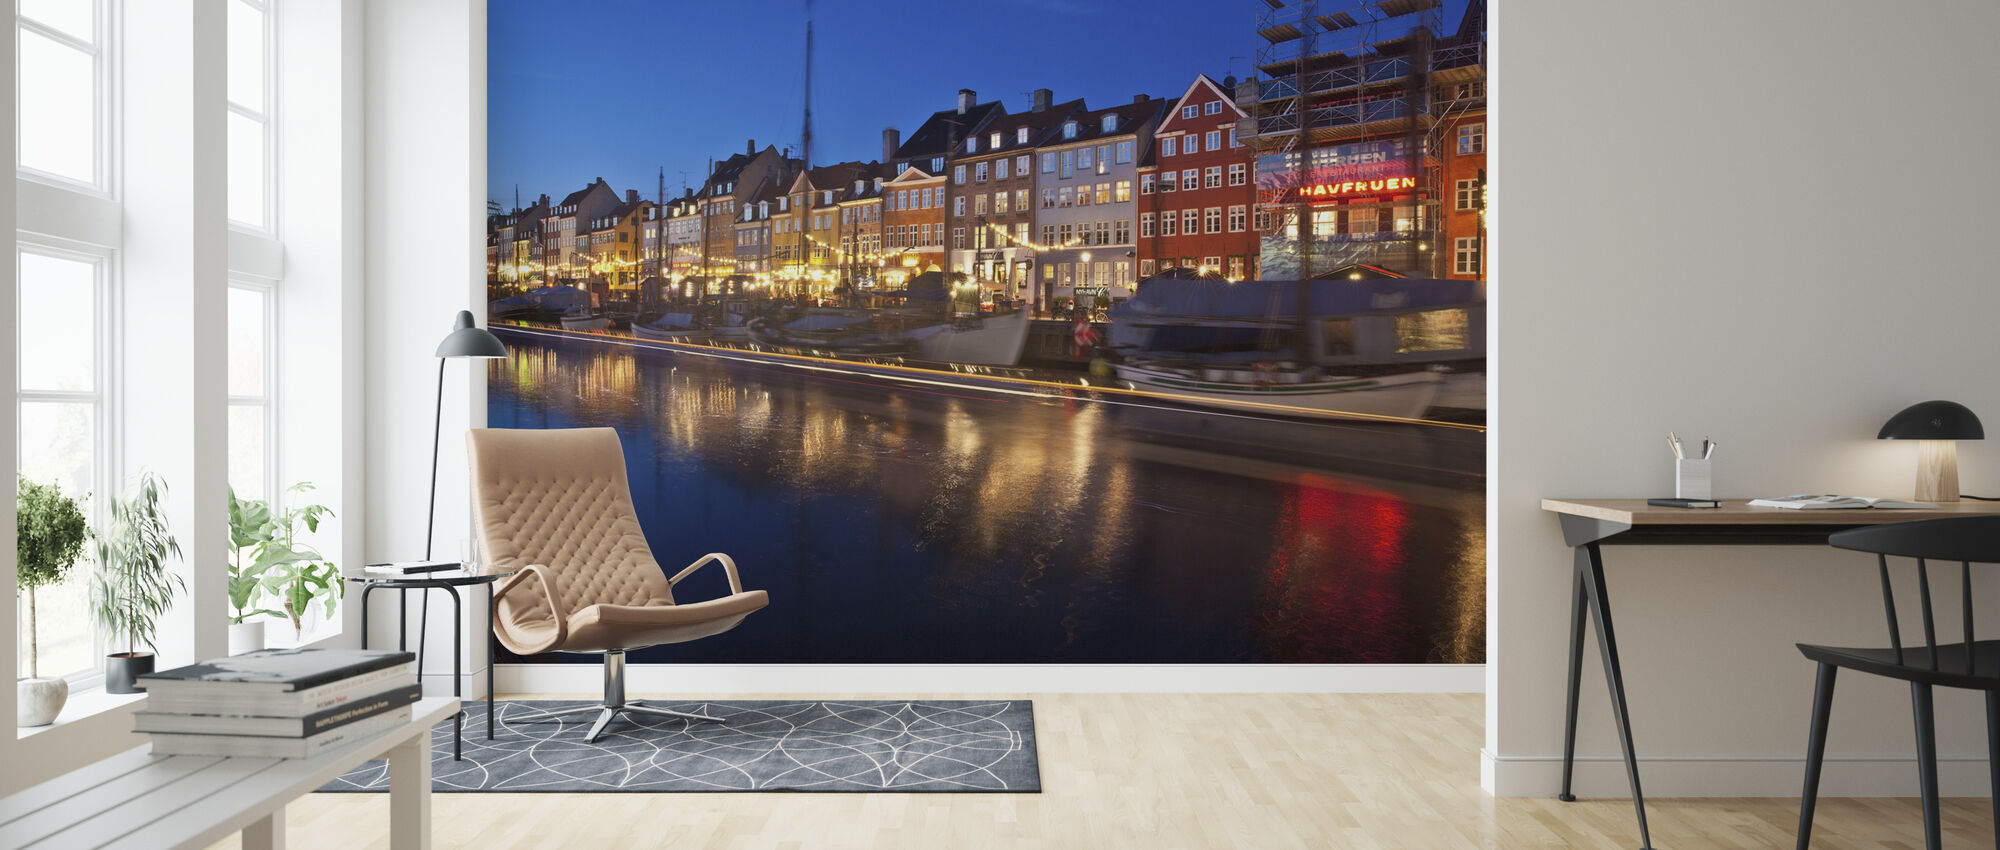 Night in Nyhavn, Copenhagen, Denmark - Wallpaper - Living Room